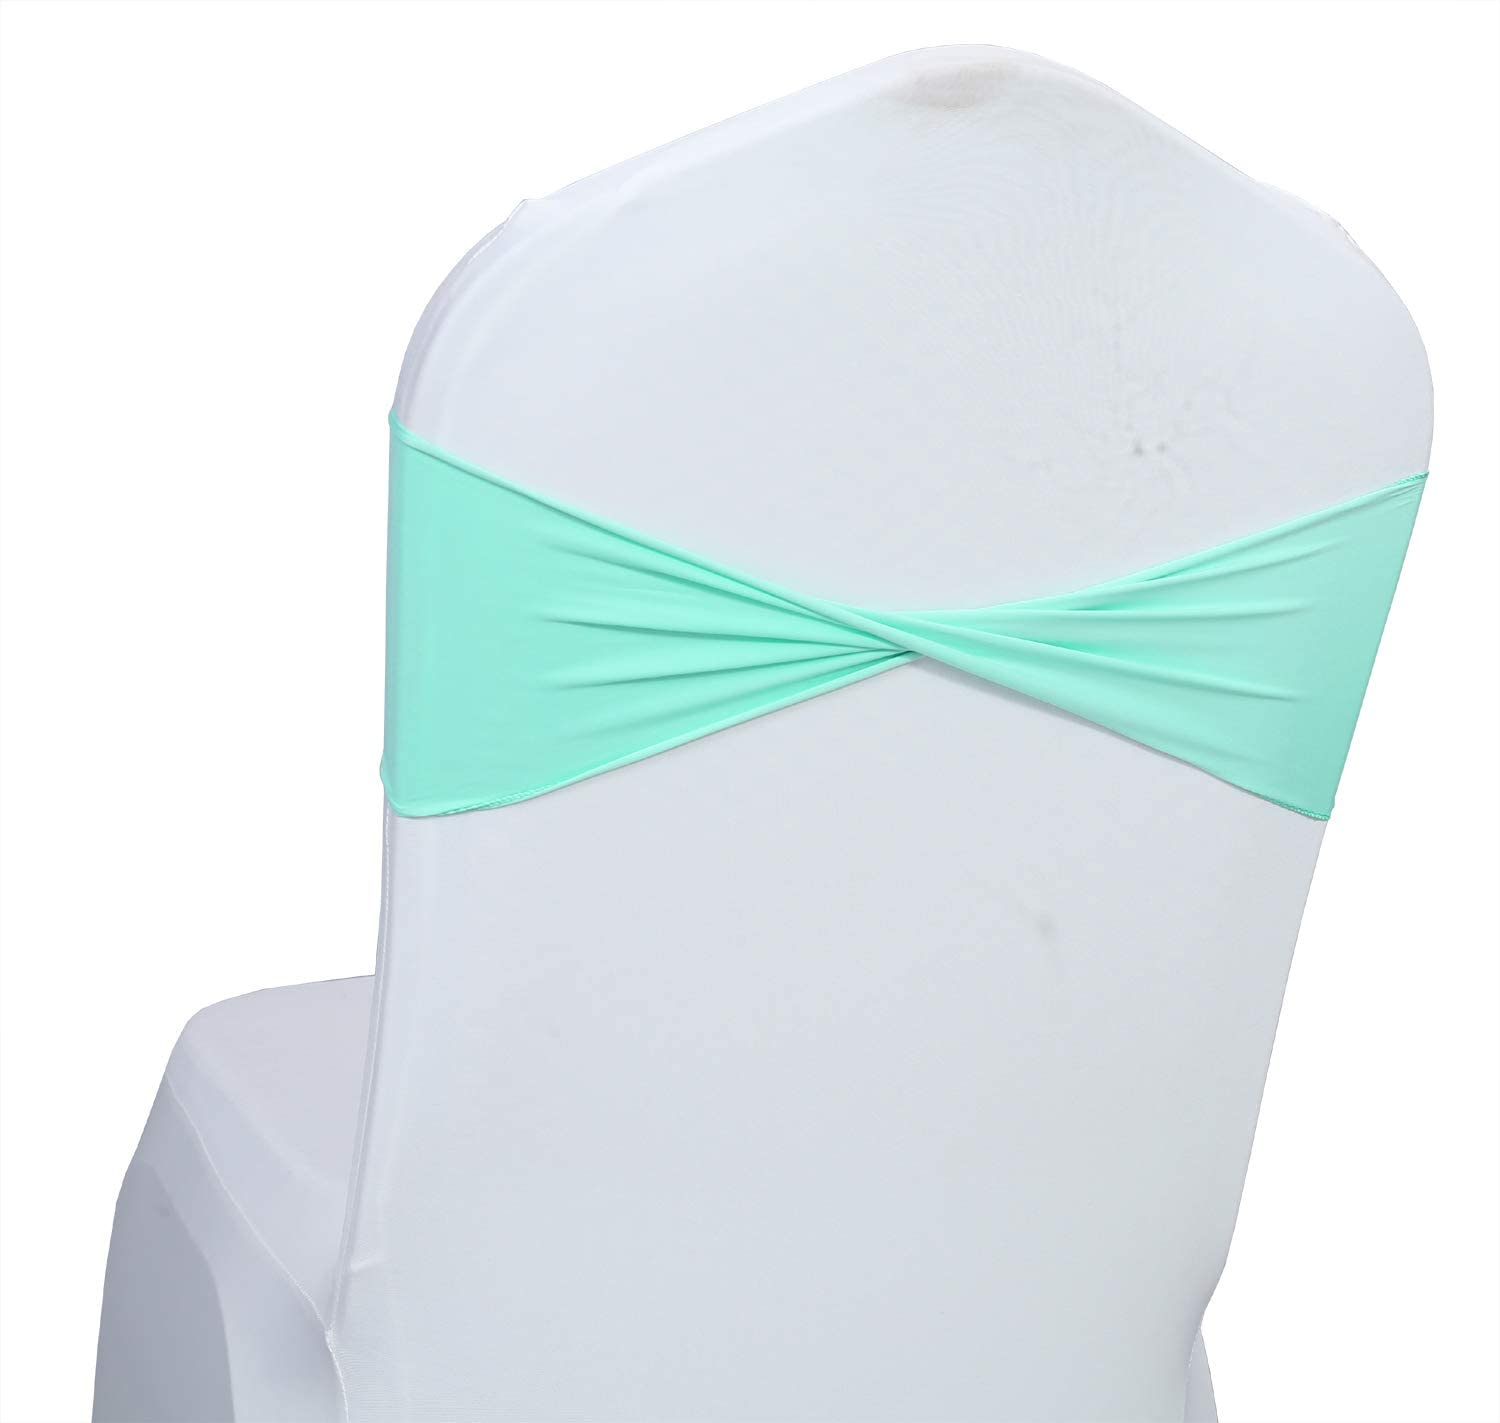 mds Pack of 1 Spandex Chair Sashes Bow sash Elastic Chair Bands Ties Without Buckle for Wedding and Events Decoration Lycra Slider Sashes Bow - sea Green